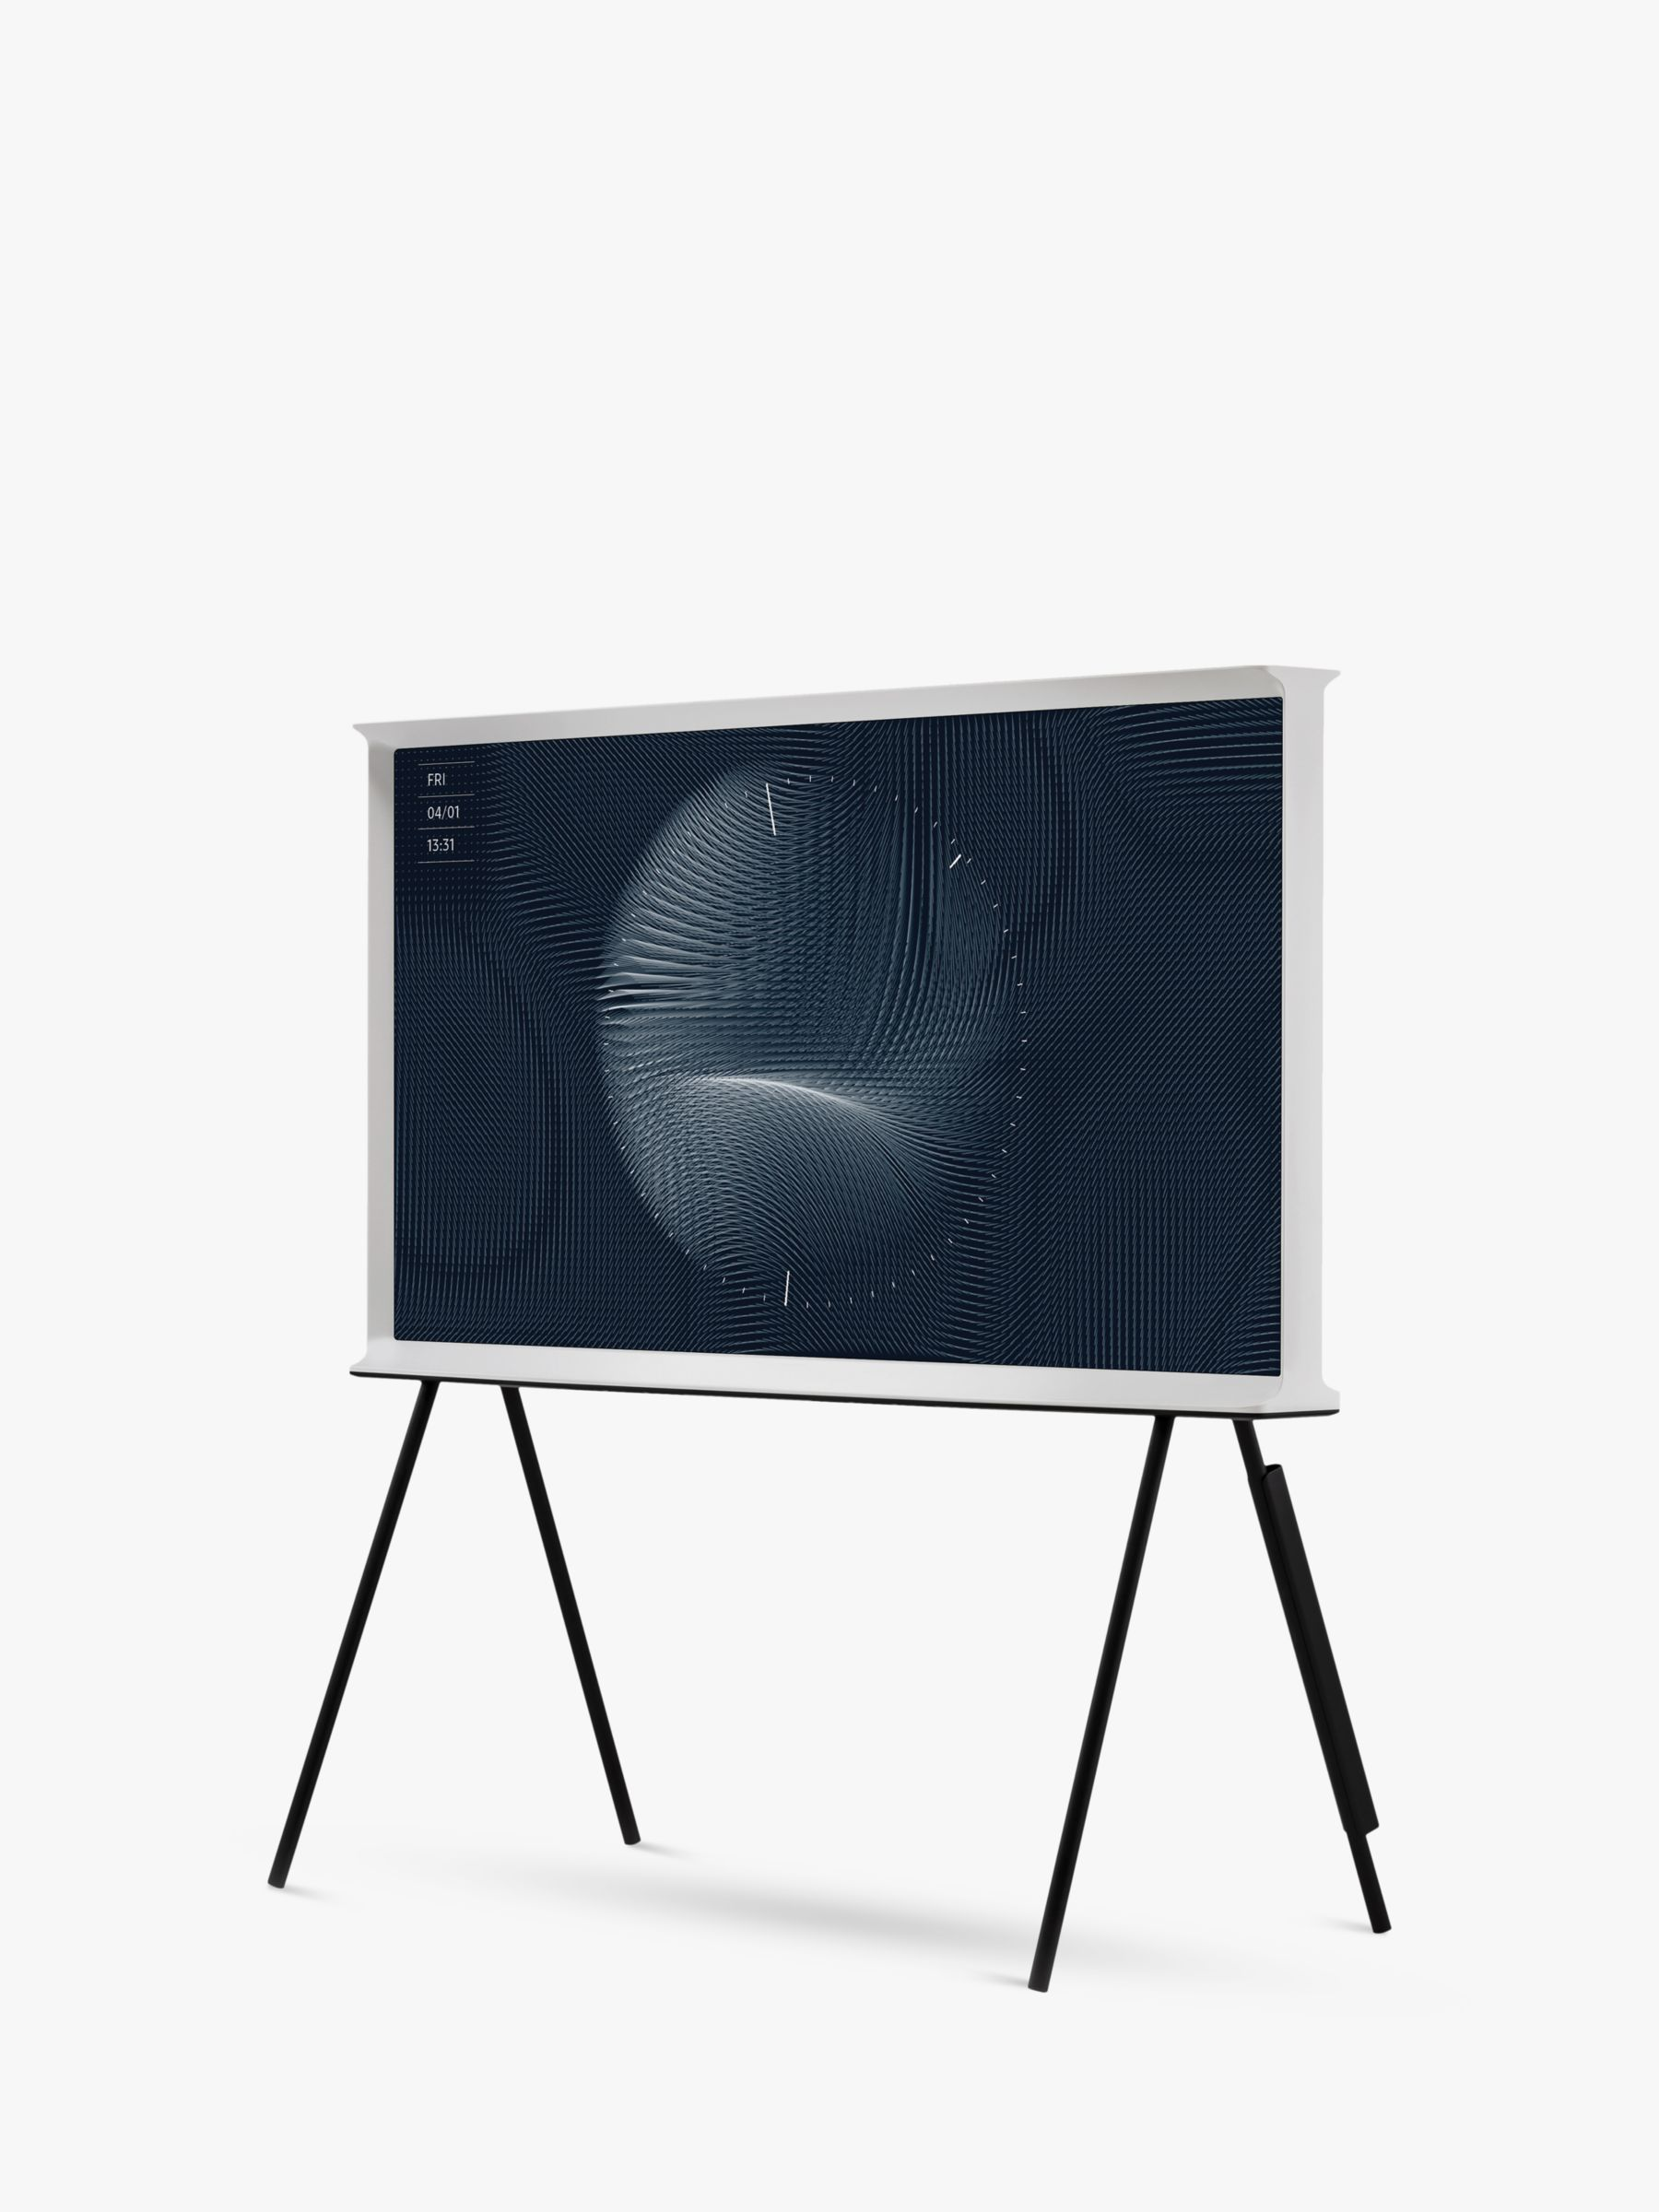 Samsung The Serif (2019) QLED HDR 4K Ultra HD Smart TV, 43